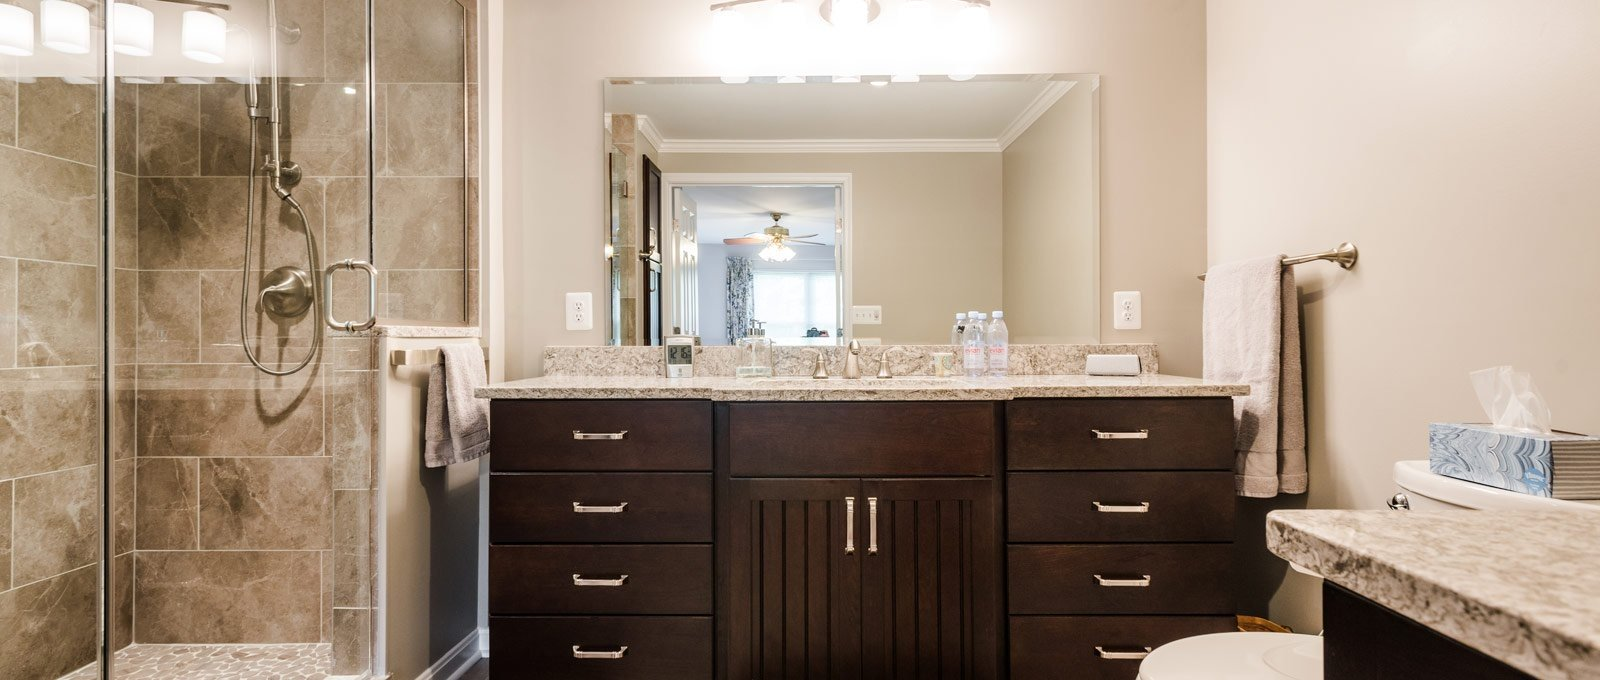 Ready to Start Your Bathroom Project with Brothers? ~ Request A Consultation